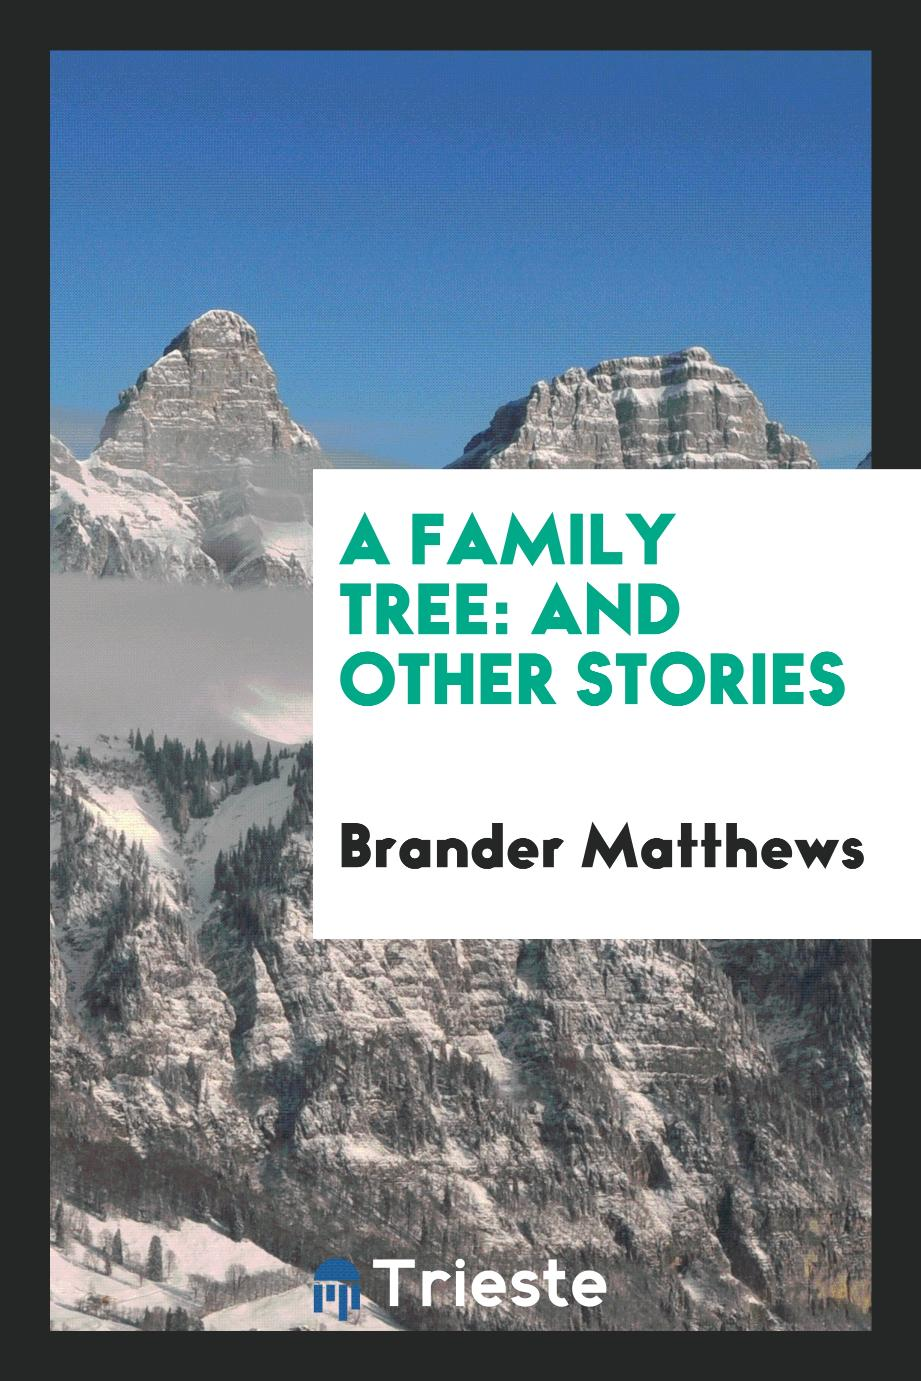 A Family Tree: And Other Stories